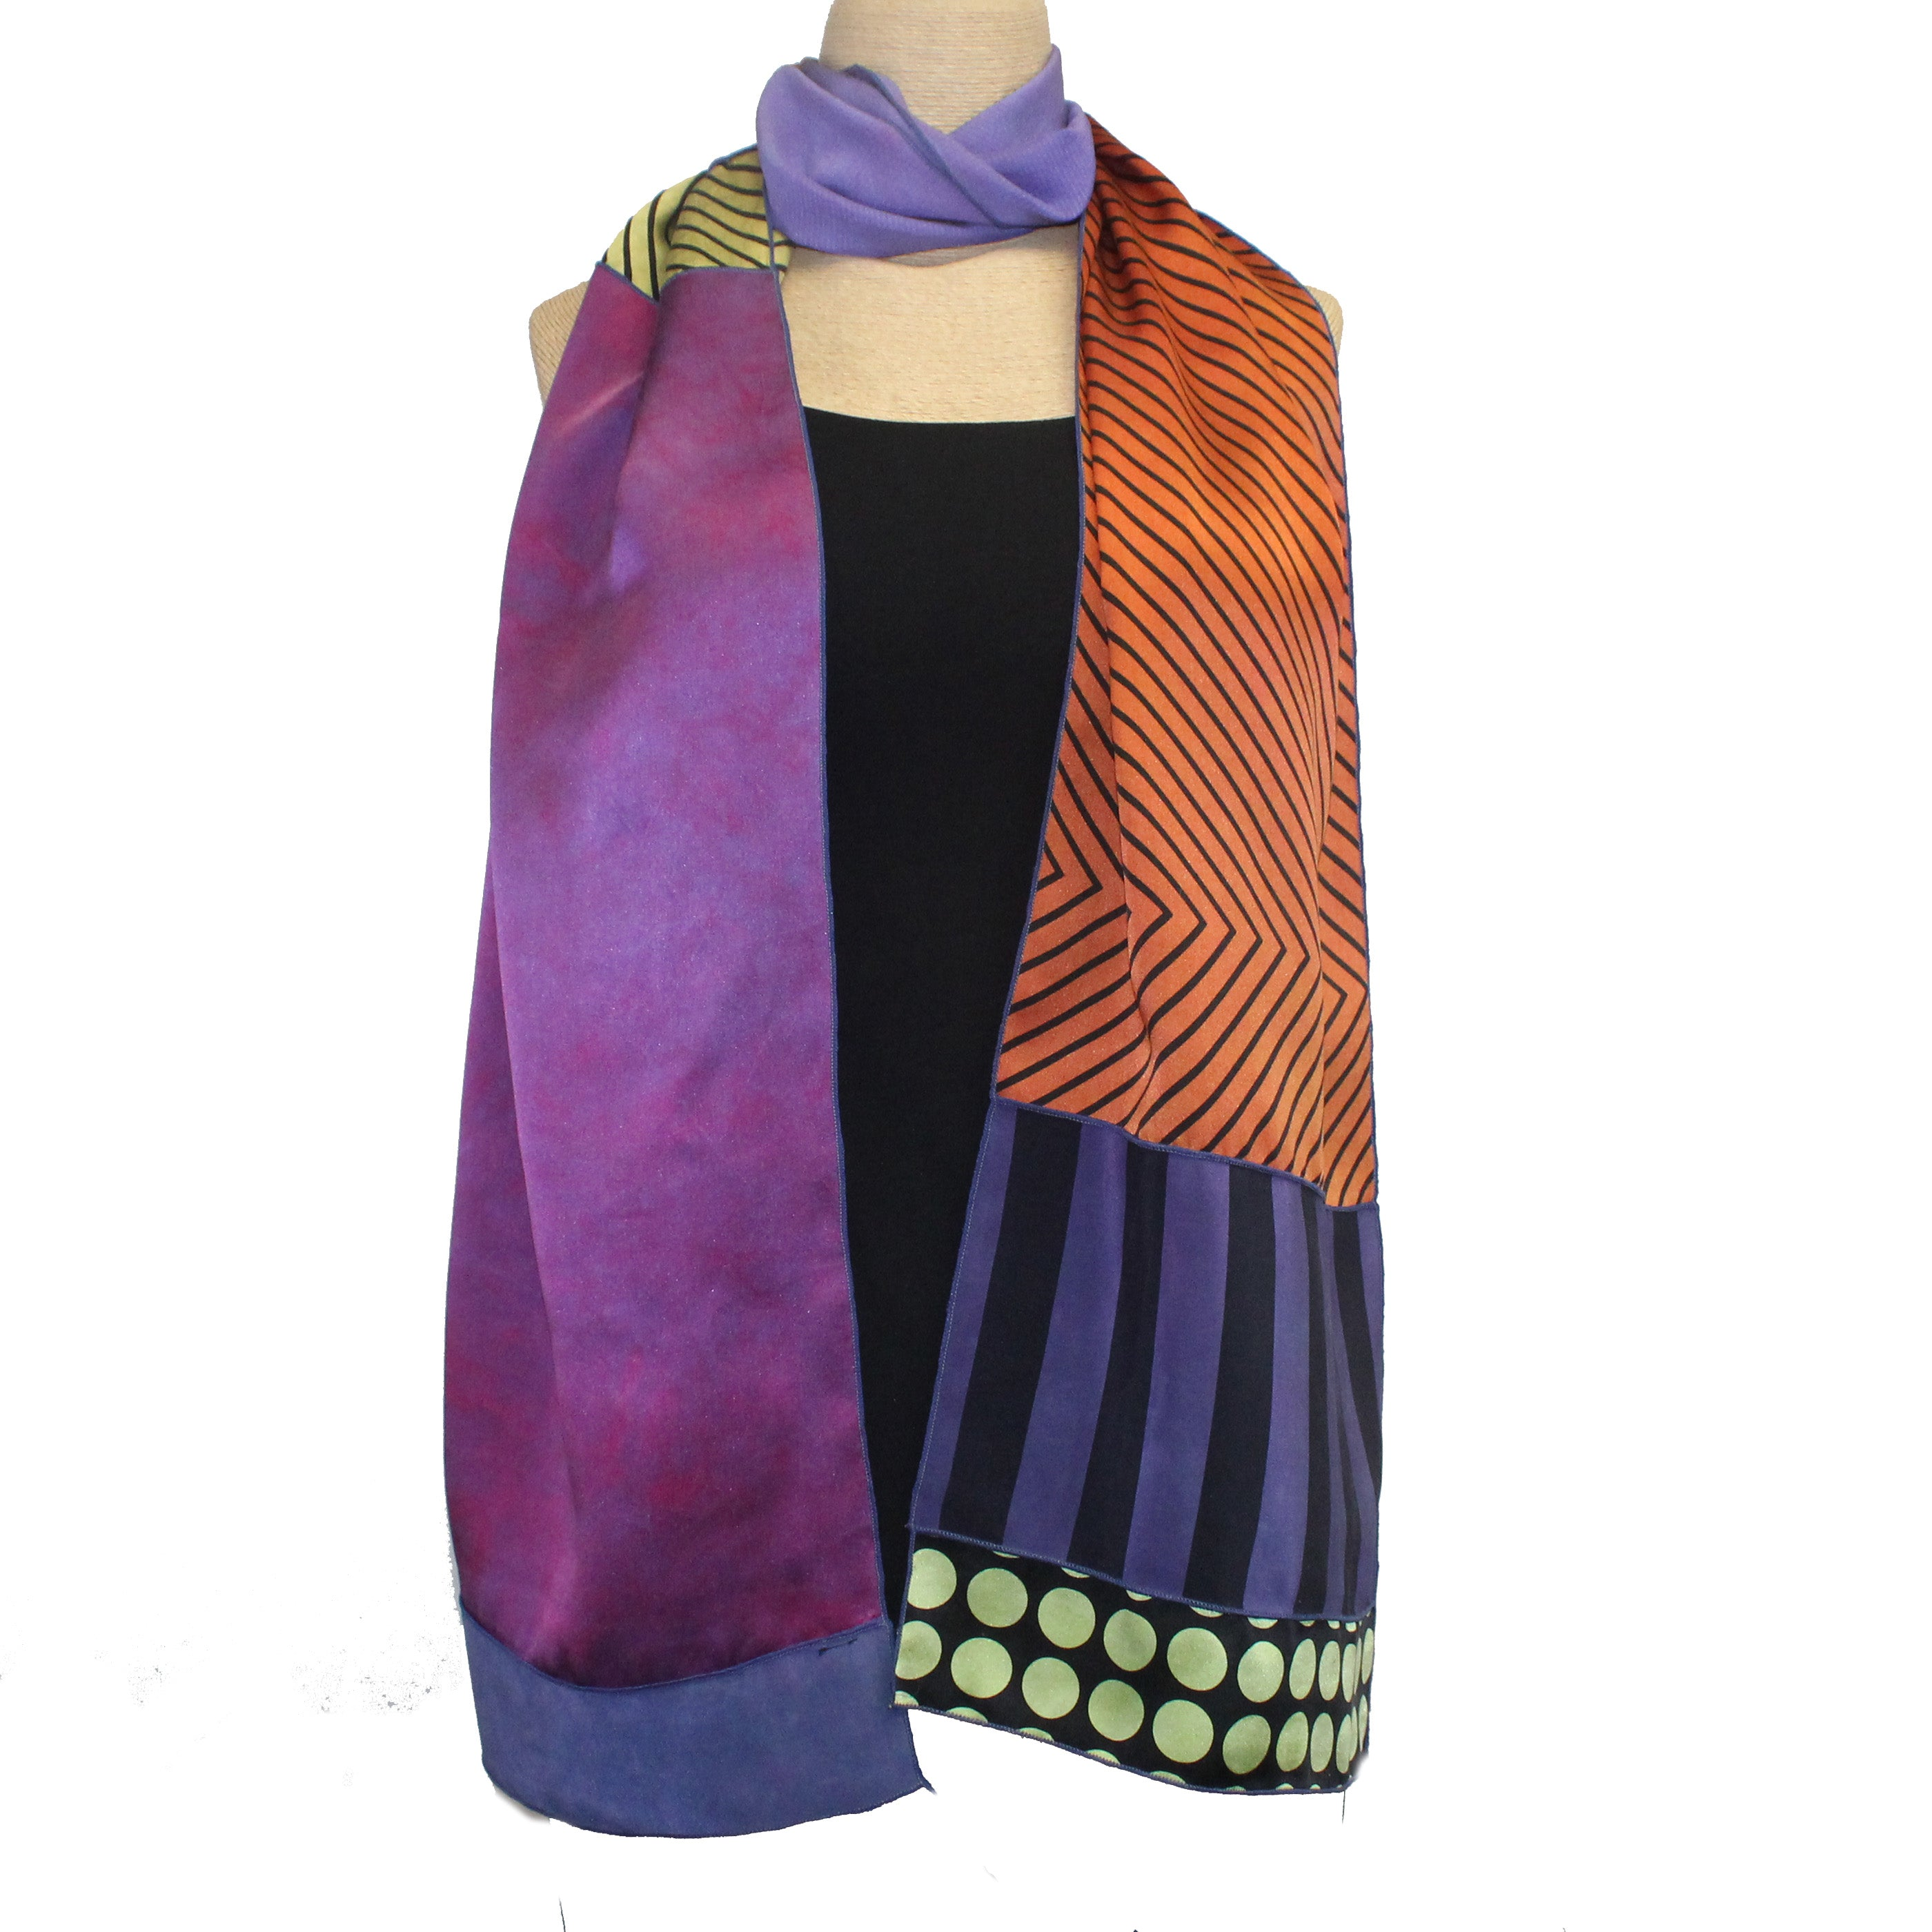 Judith Bird Scarf, Silk Singles, Purples & Friends